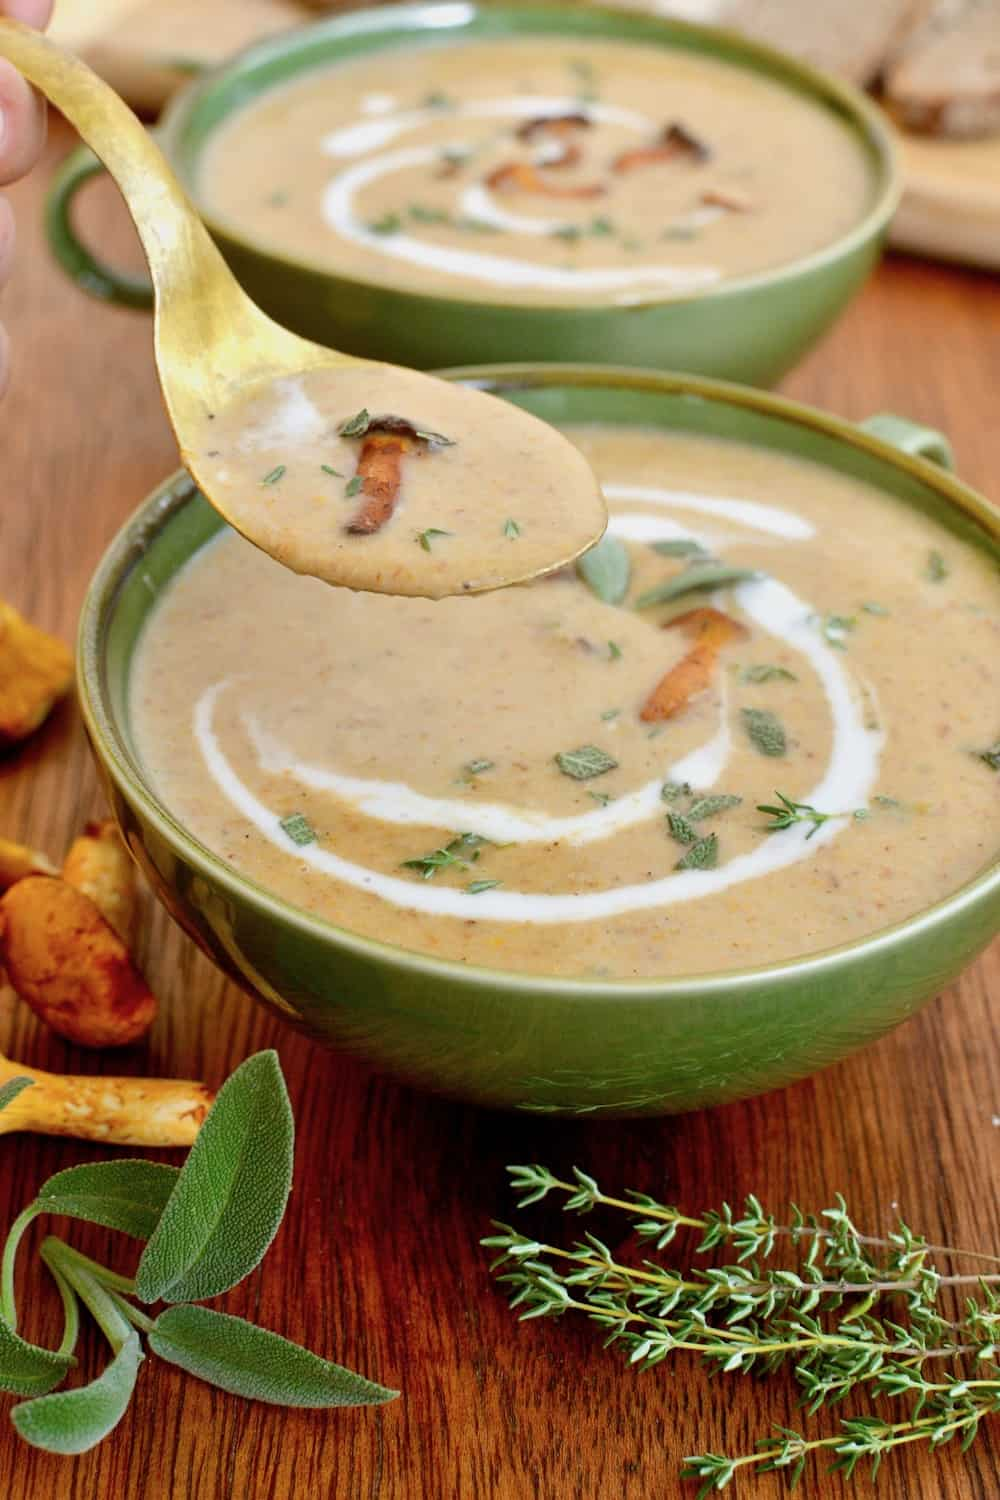 A spoonful of creamy chanterelle soup with a small, whole mushroom on top is lifted from a bowl of soup, around which are lying some fresh herbs.